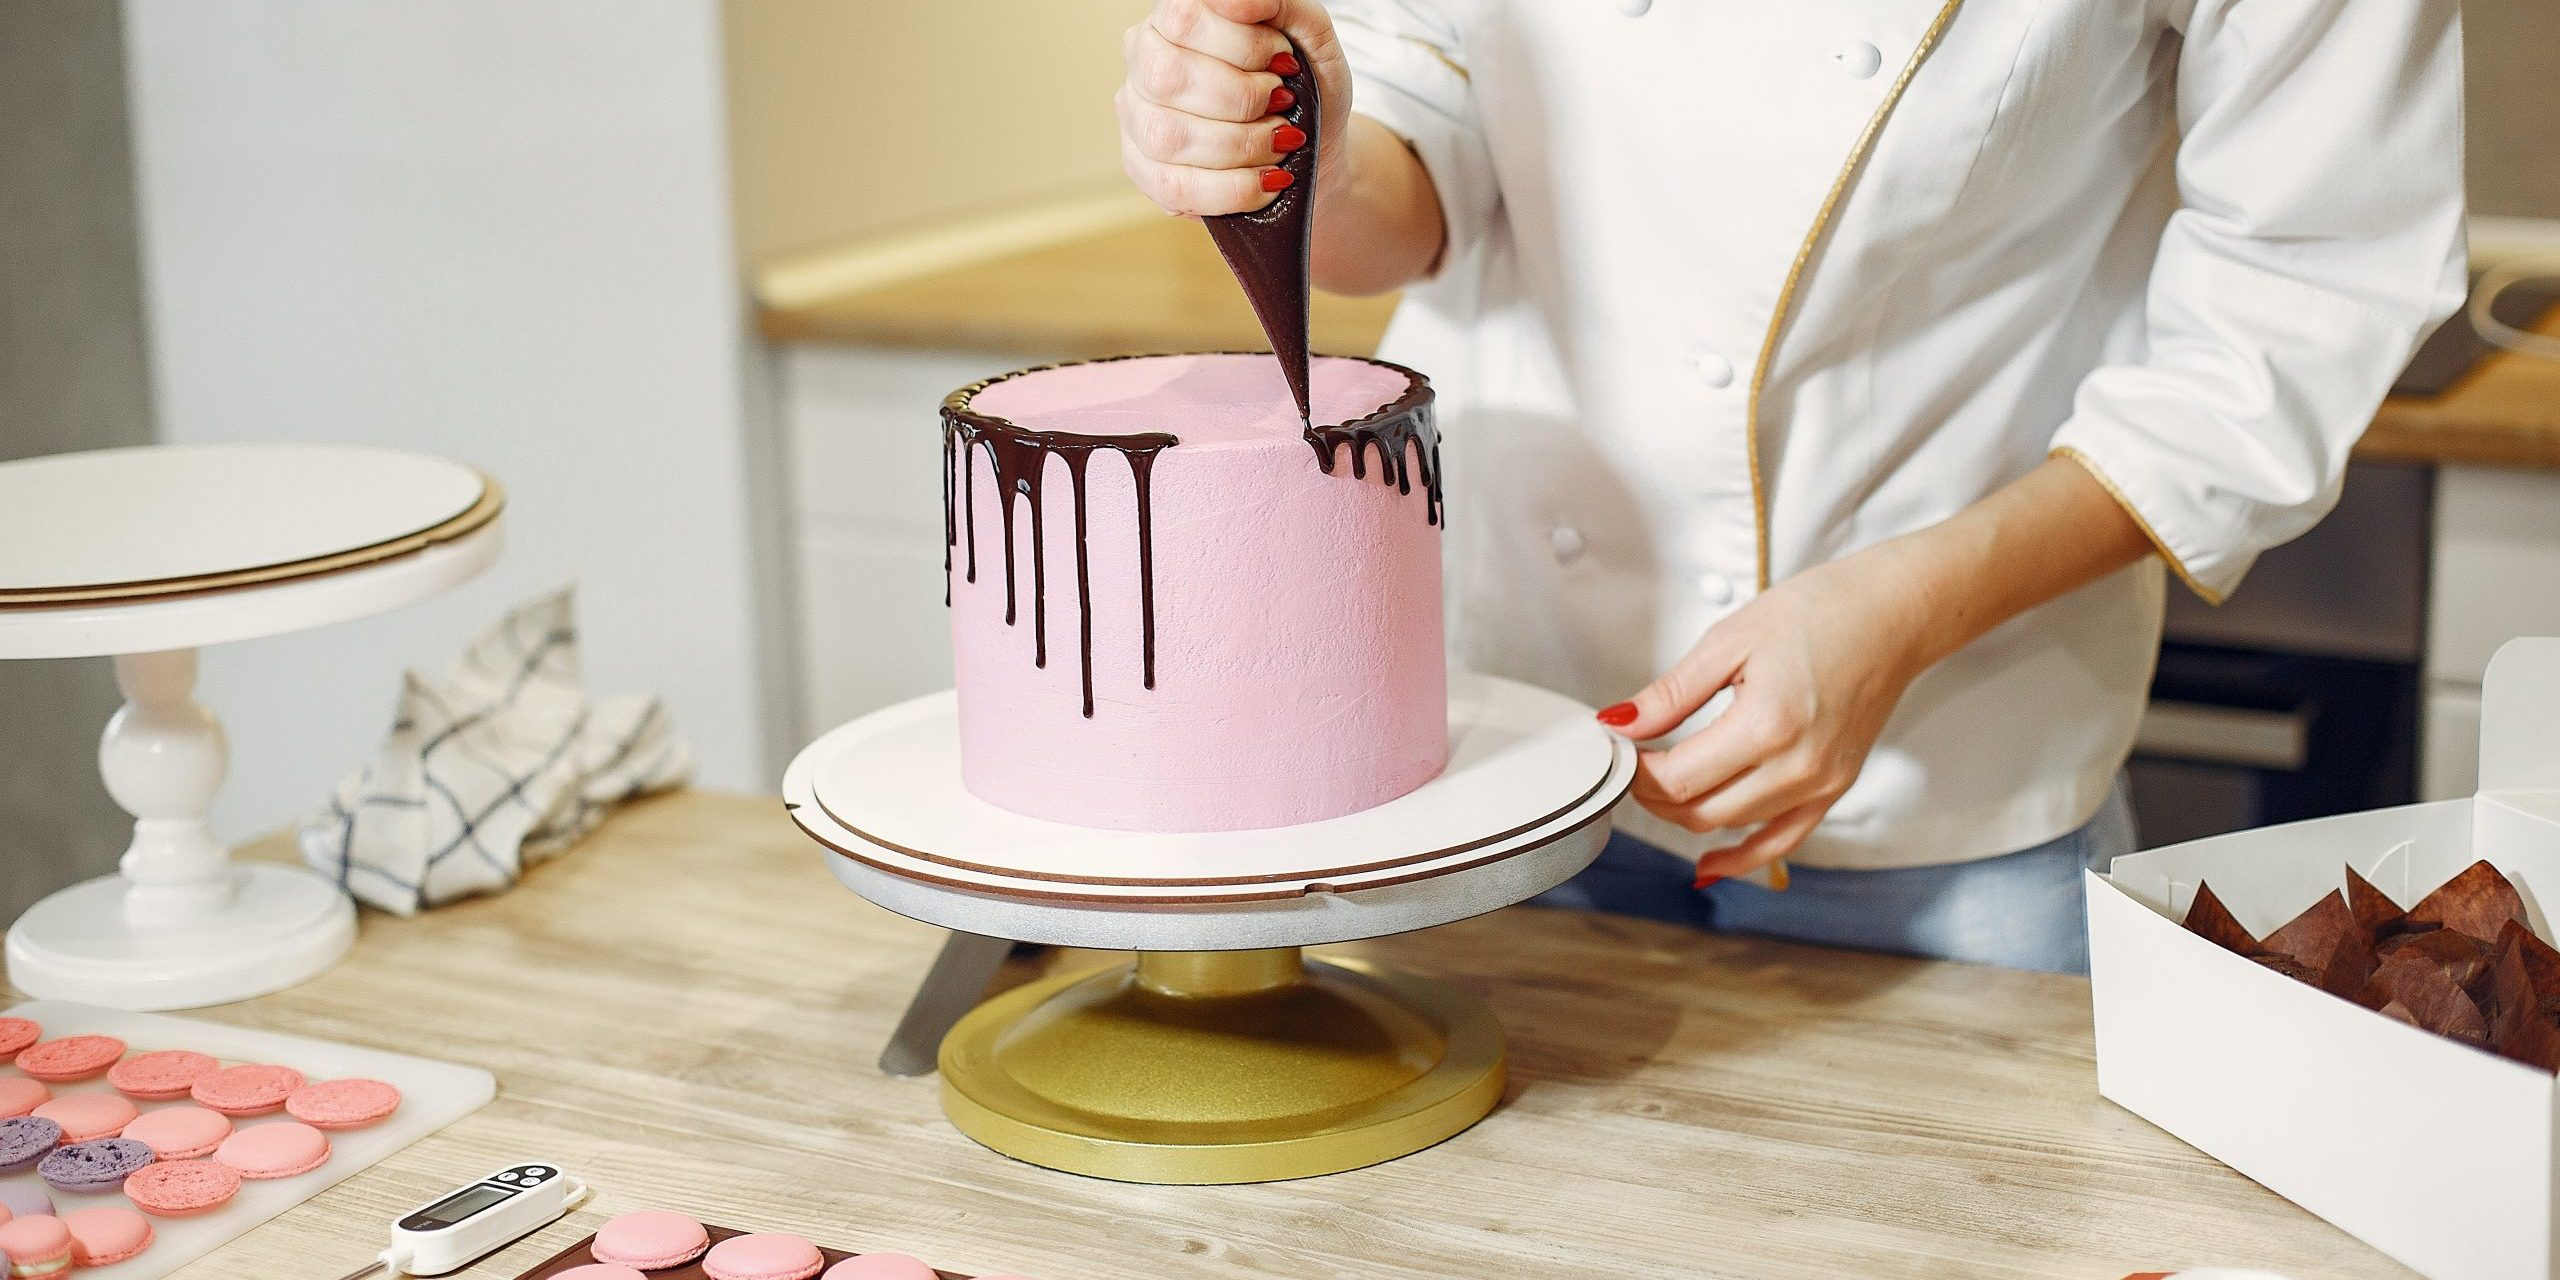 CERTIFICATE IN BAKING AND PASTRY